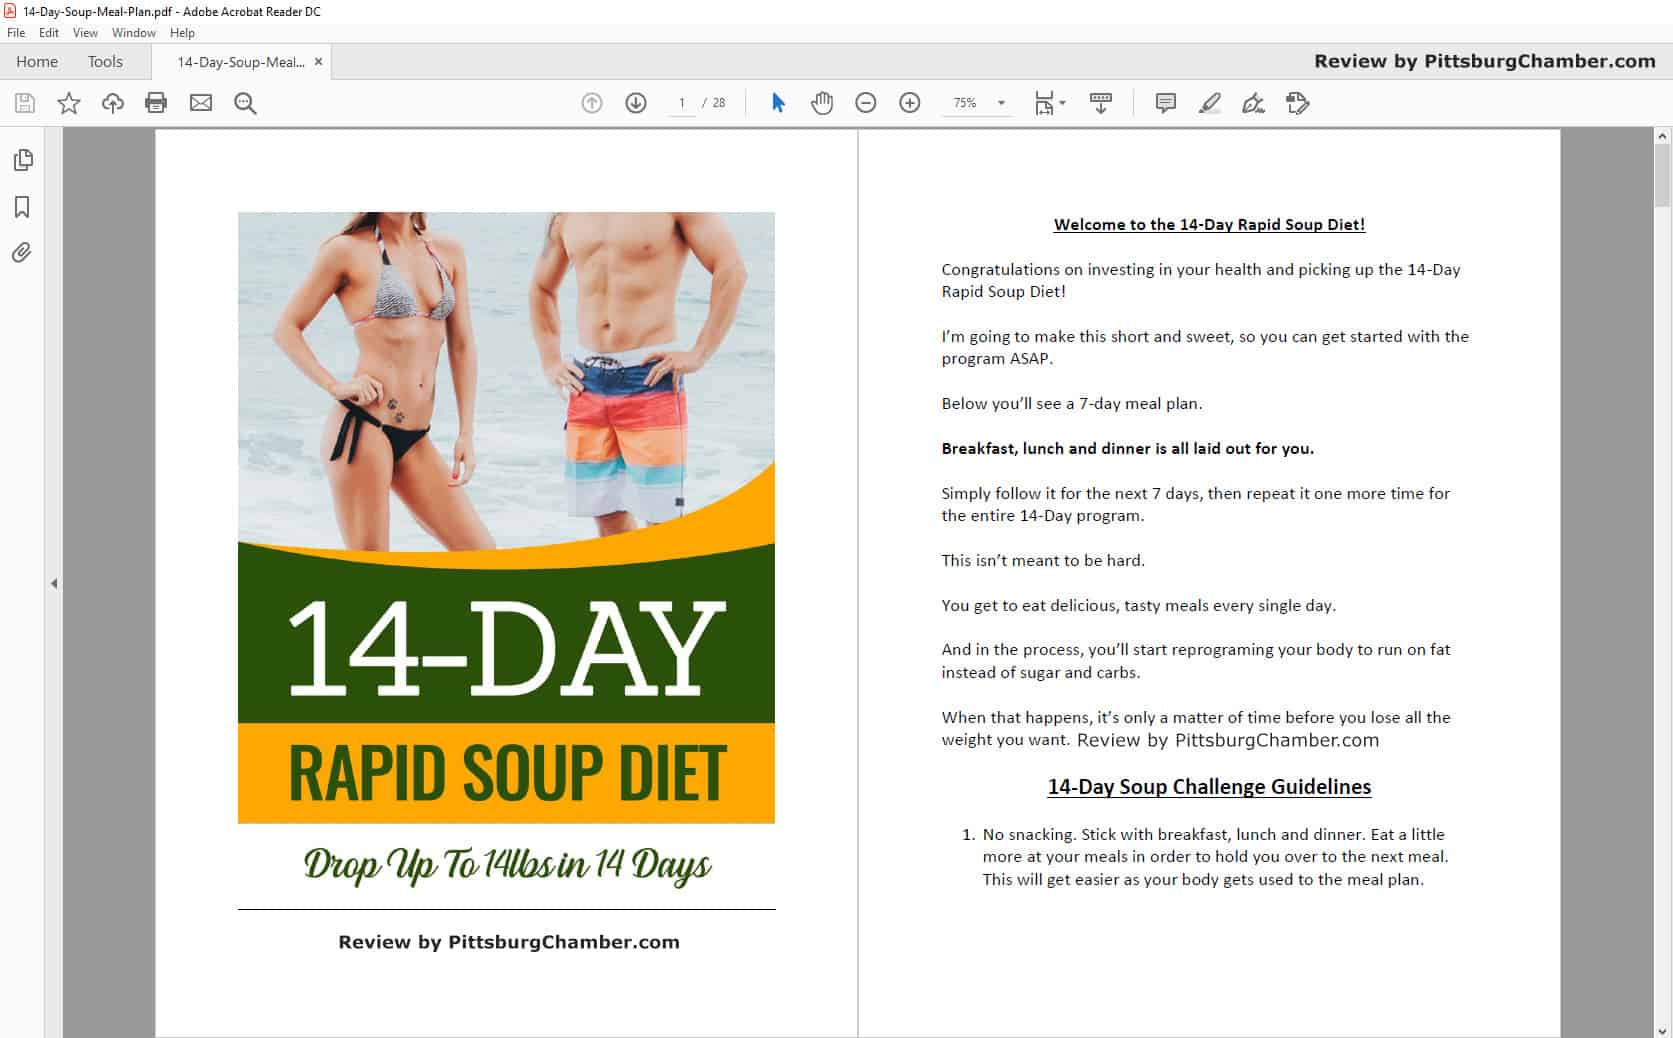 14-Day Rapid Soup Diet Table of Contents